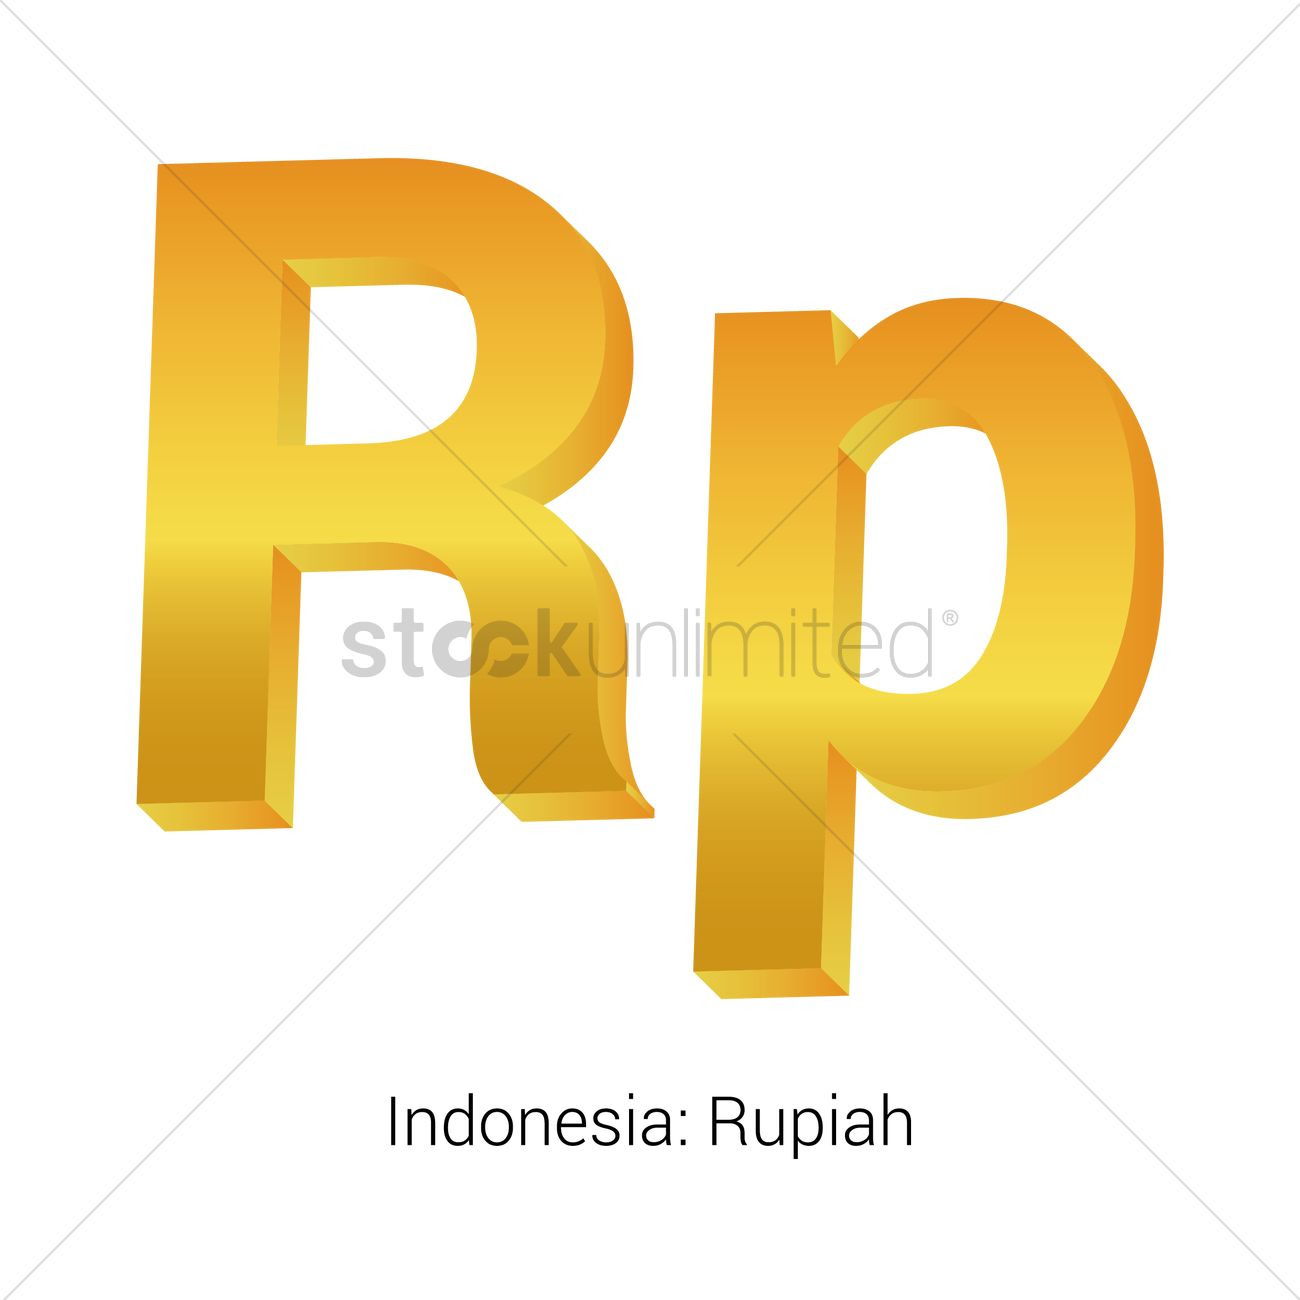 Rupiah Currency Symbol Vector Image 1821561 Stockunlimited